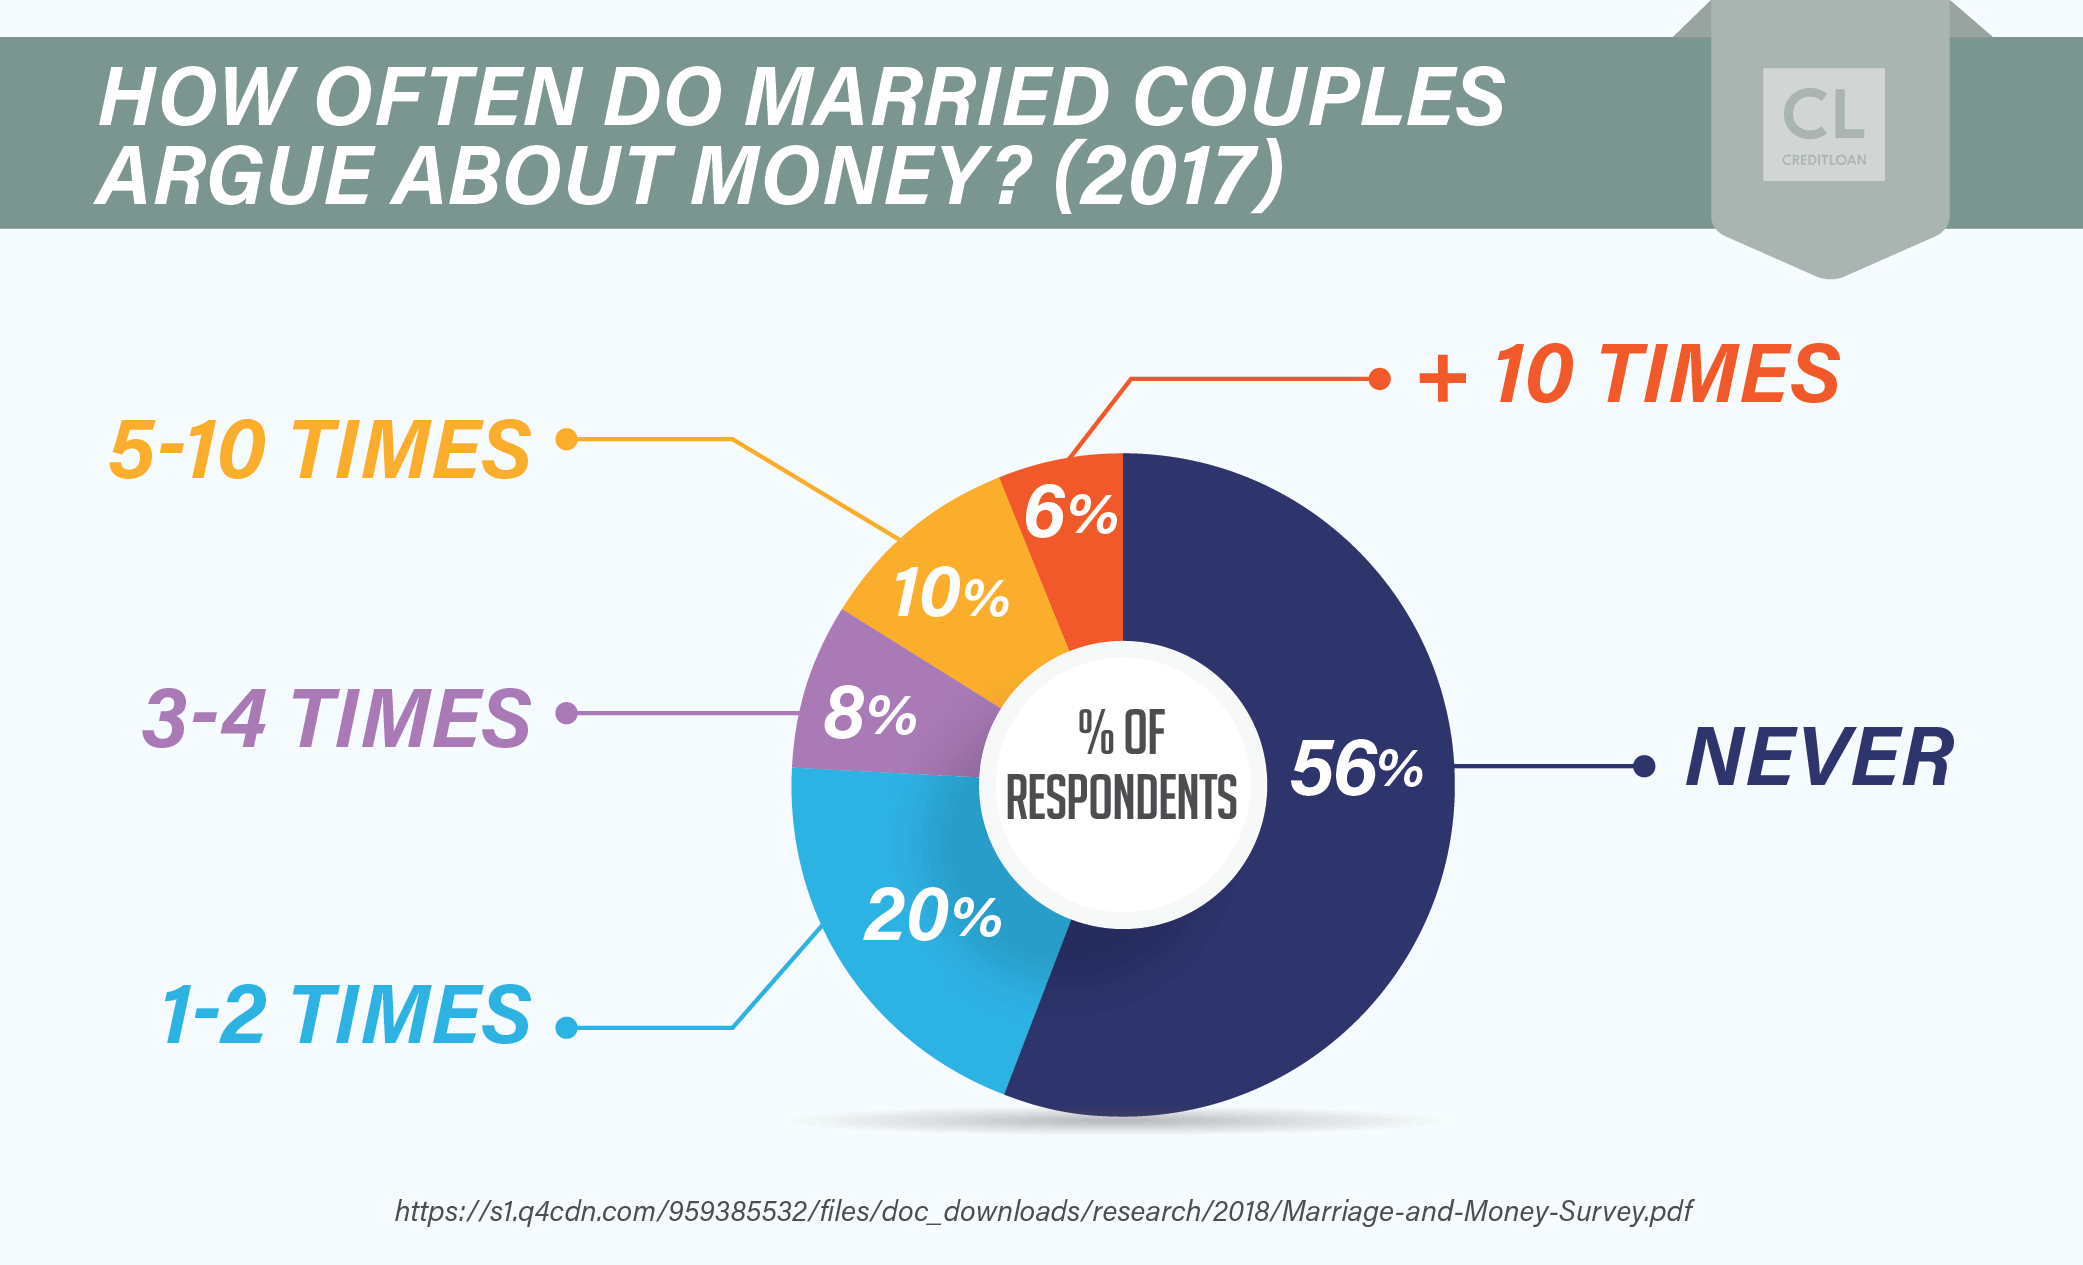 How Often Did Married Couples Argue About Money in 2017?